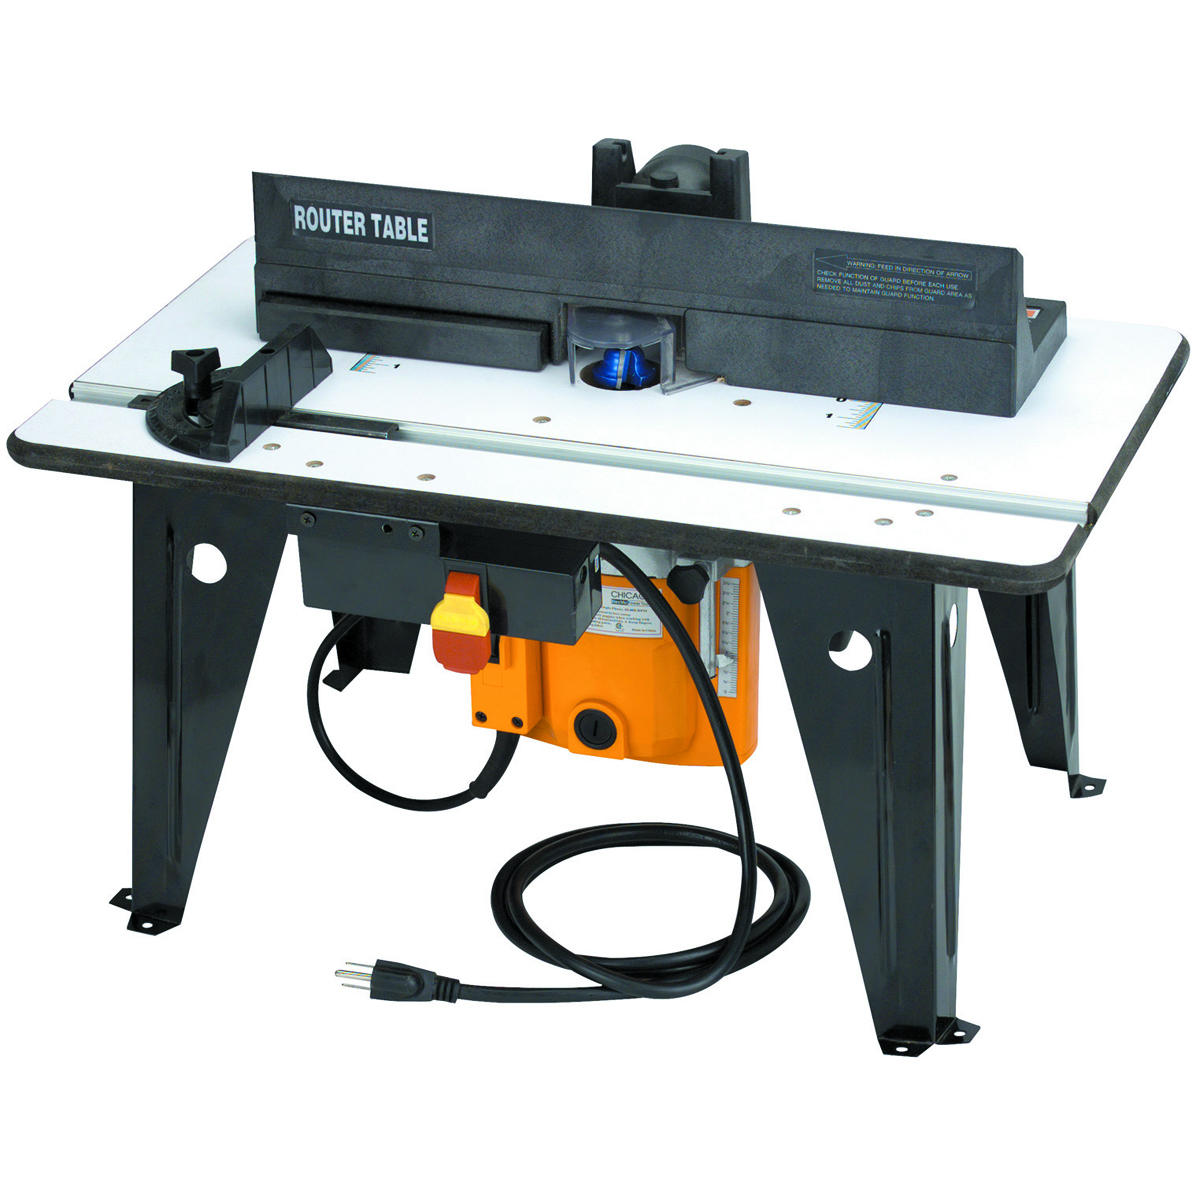 Benchtop router table with 1 34 hp router greentooth Gallery